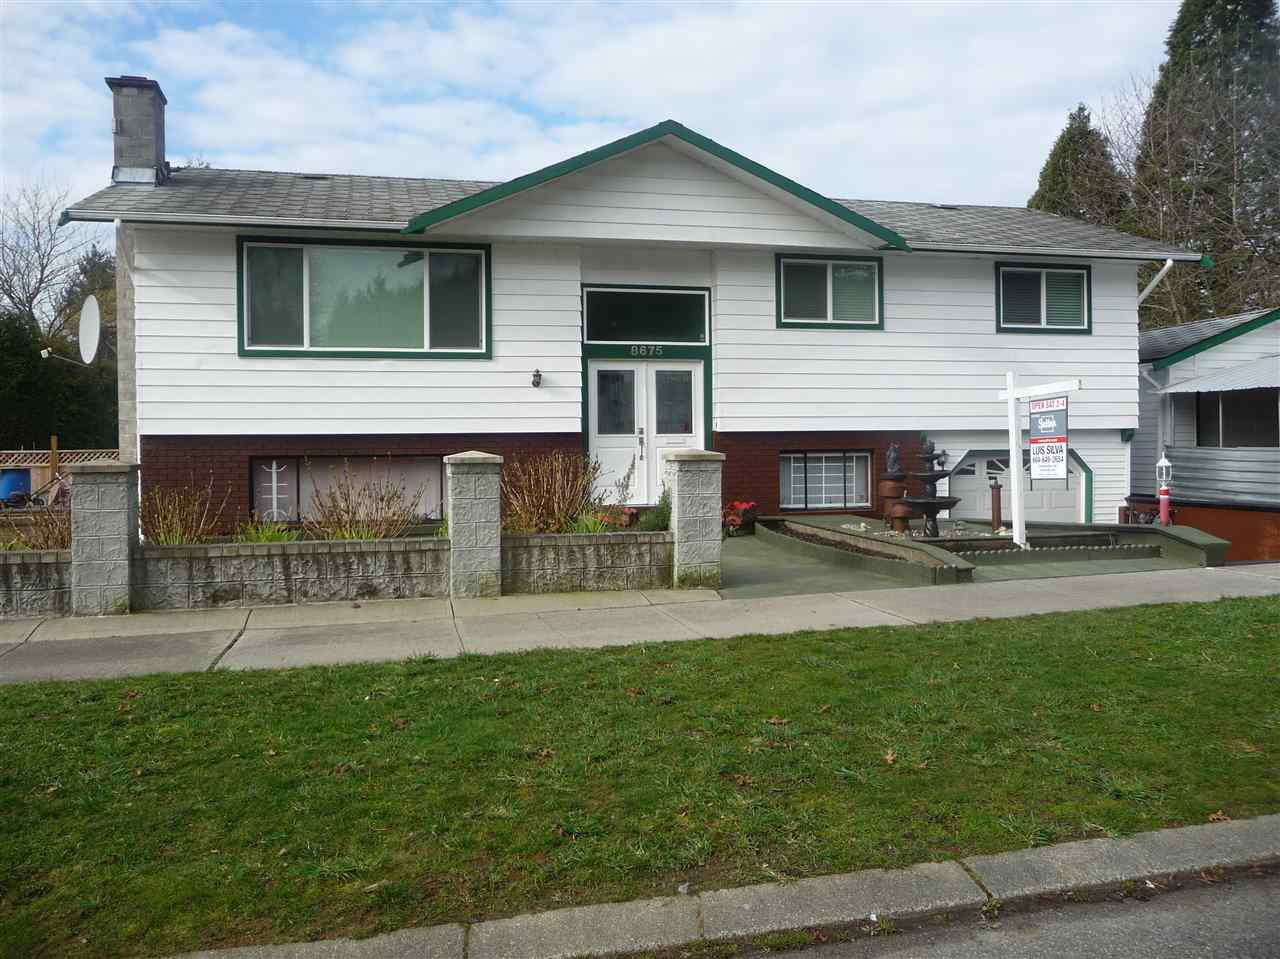 Photo 2: Photos: 8675 151B Street in Surrey: Bear Creek Green Timbers House for sale : MLS®# R2036956